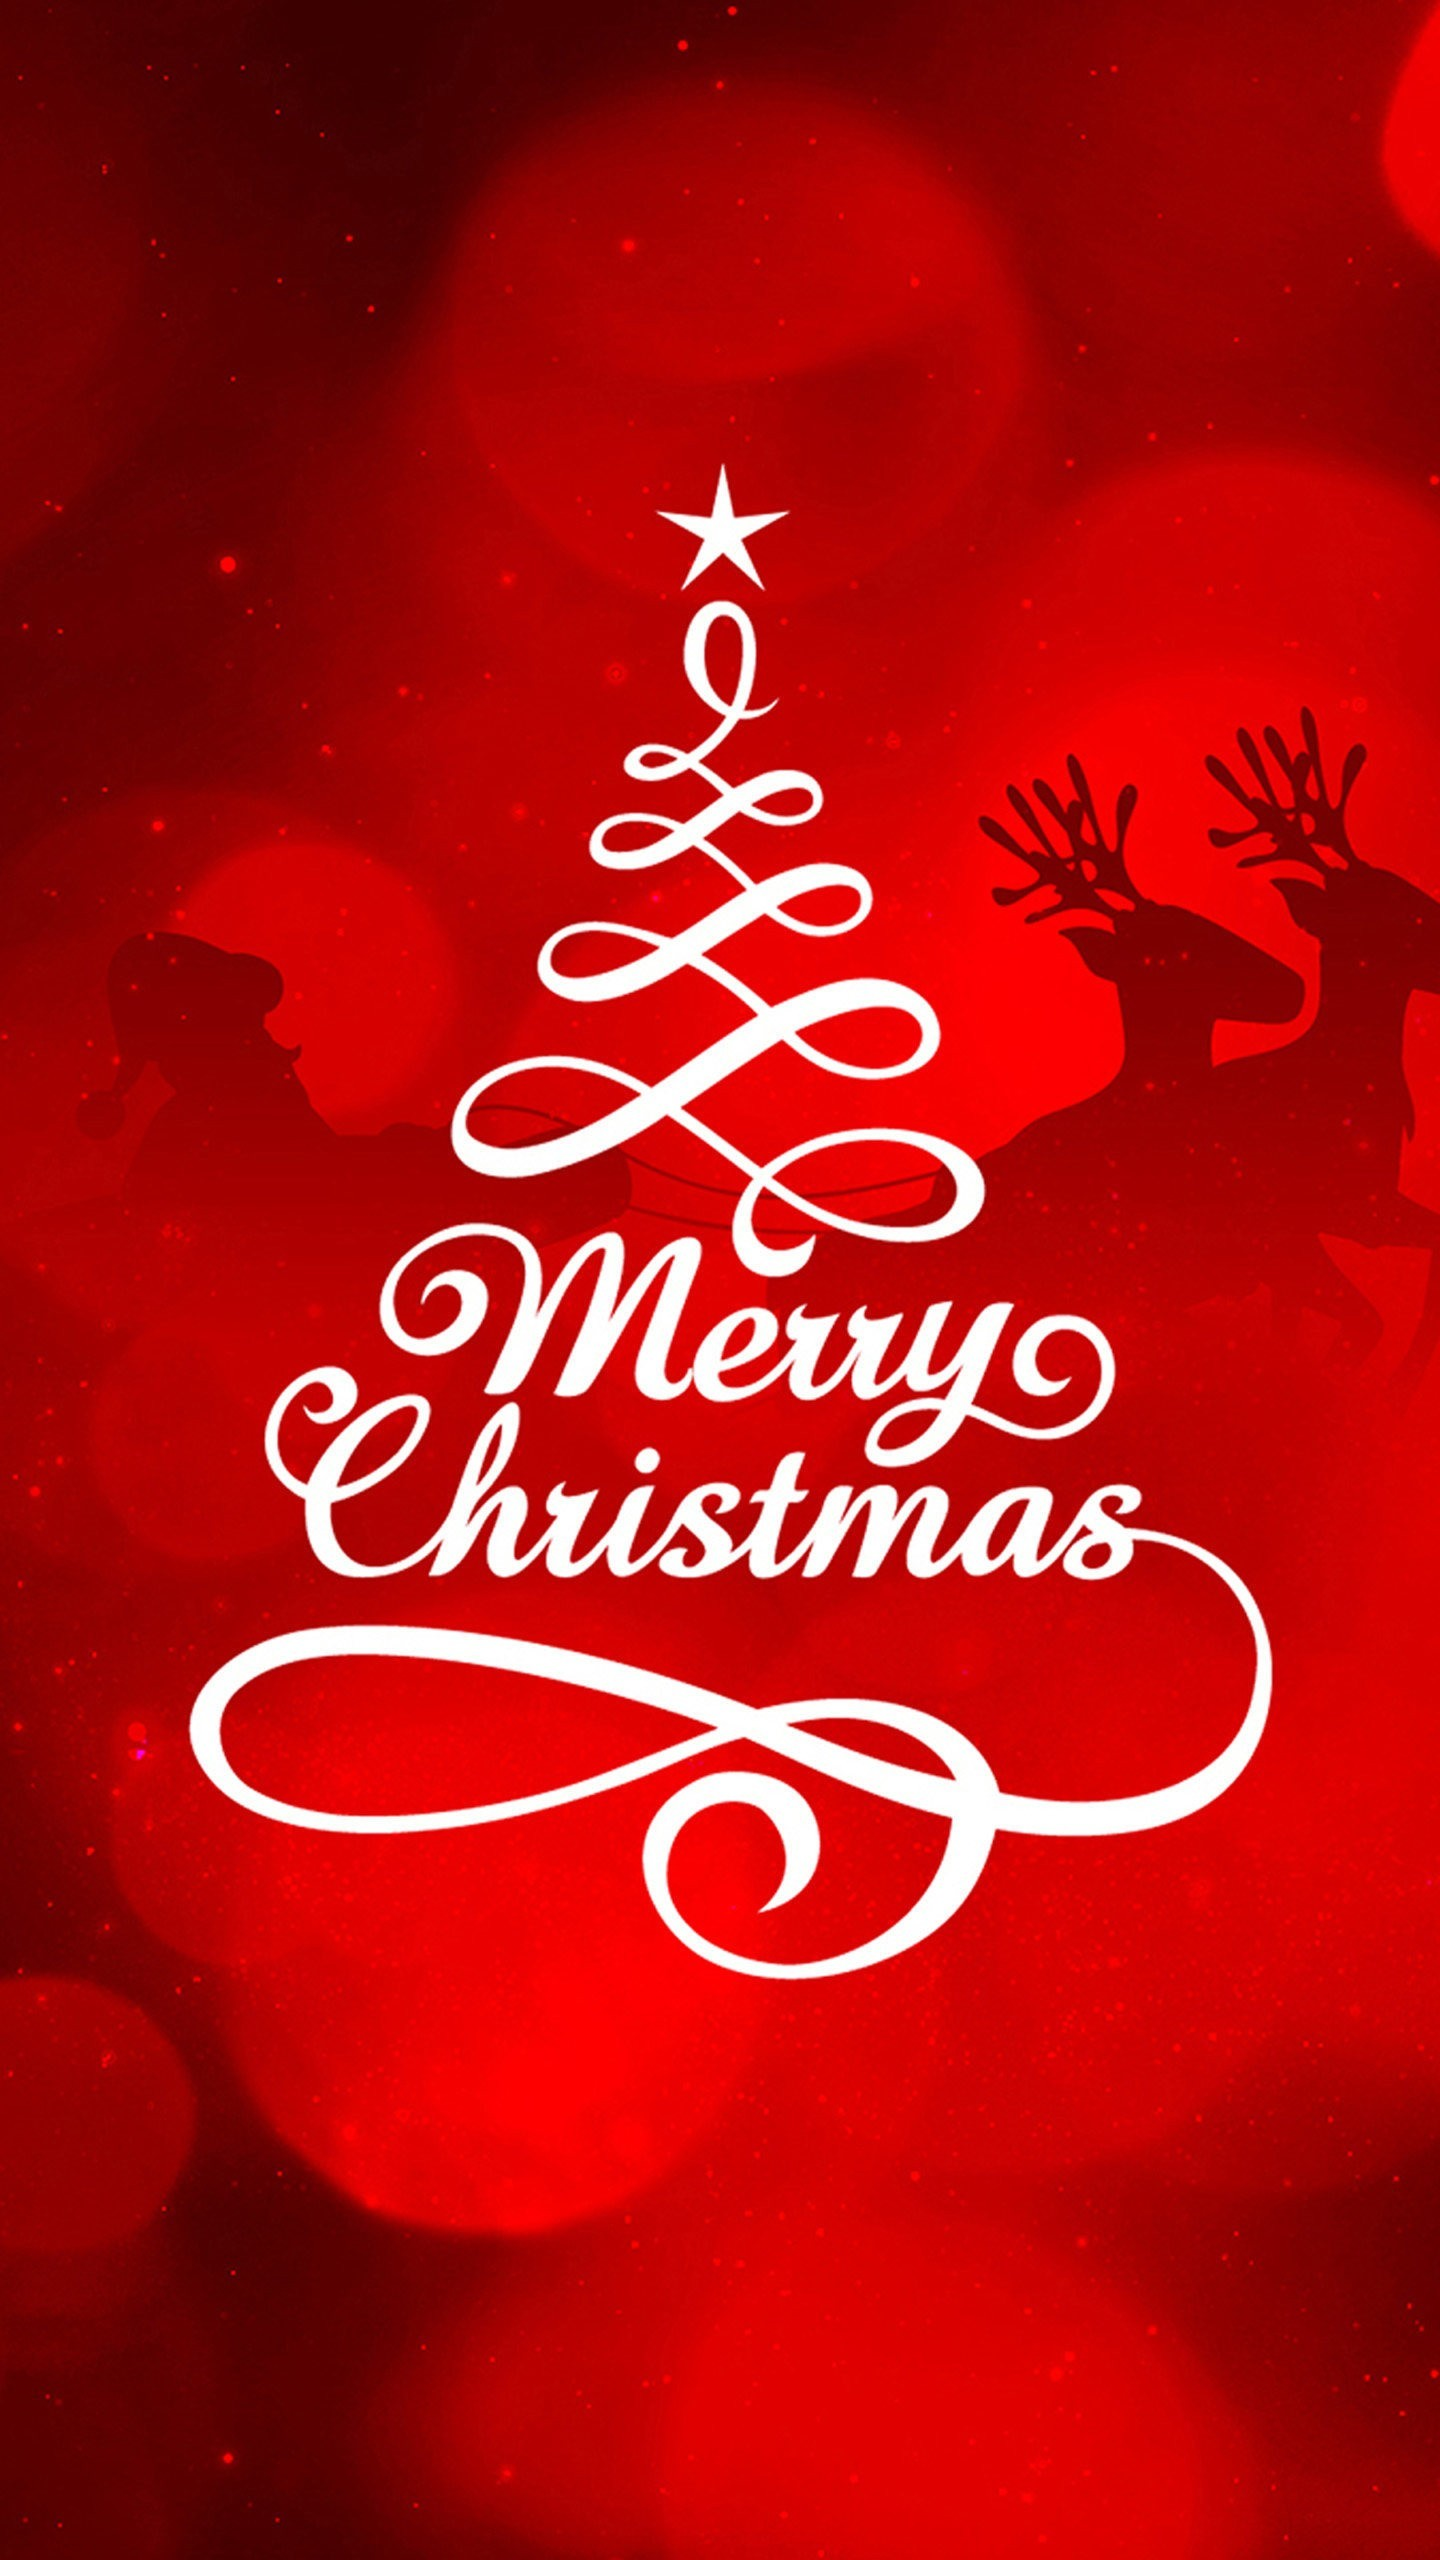 download 1 merry christmas wallpaper